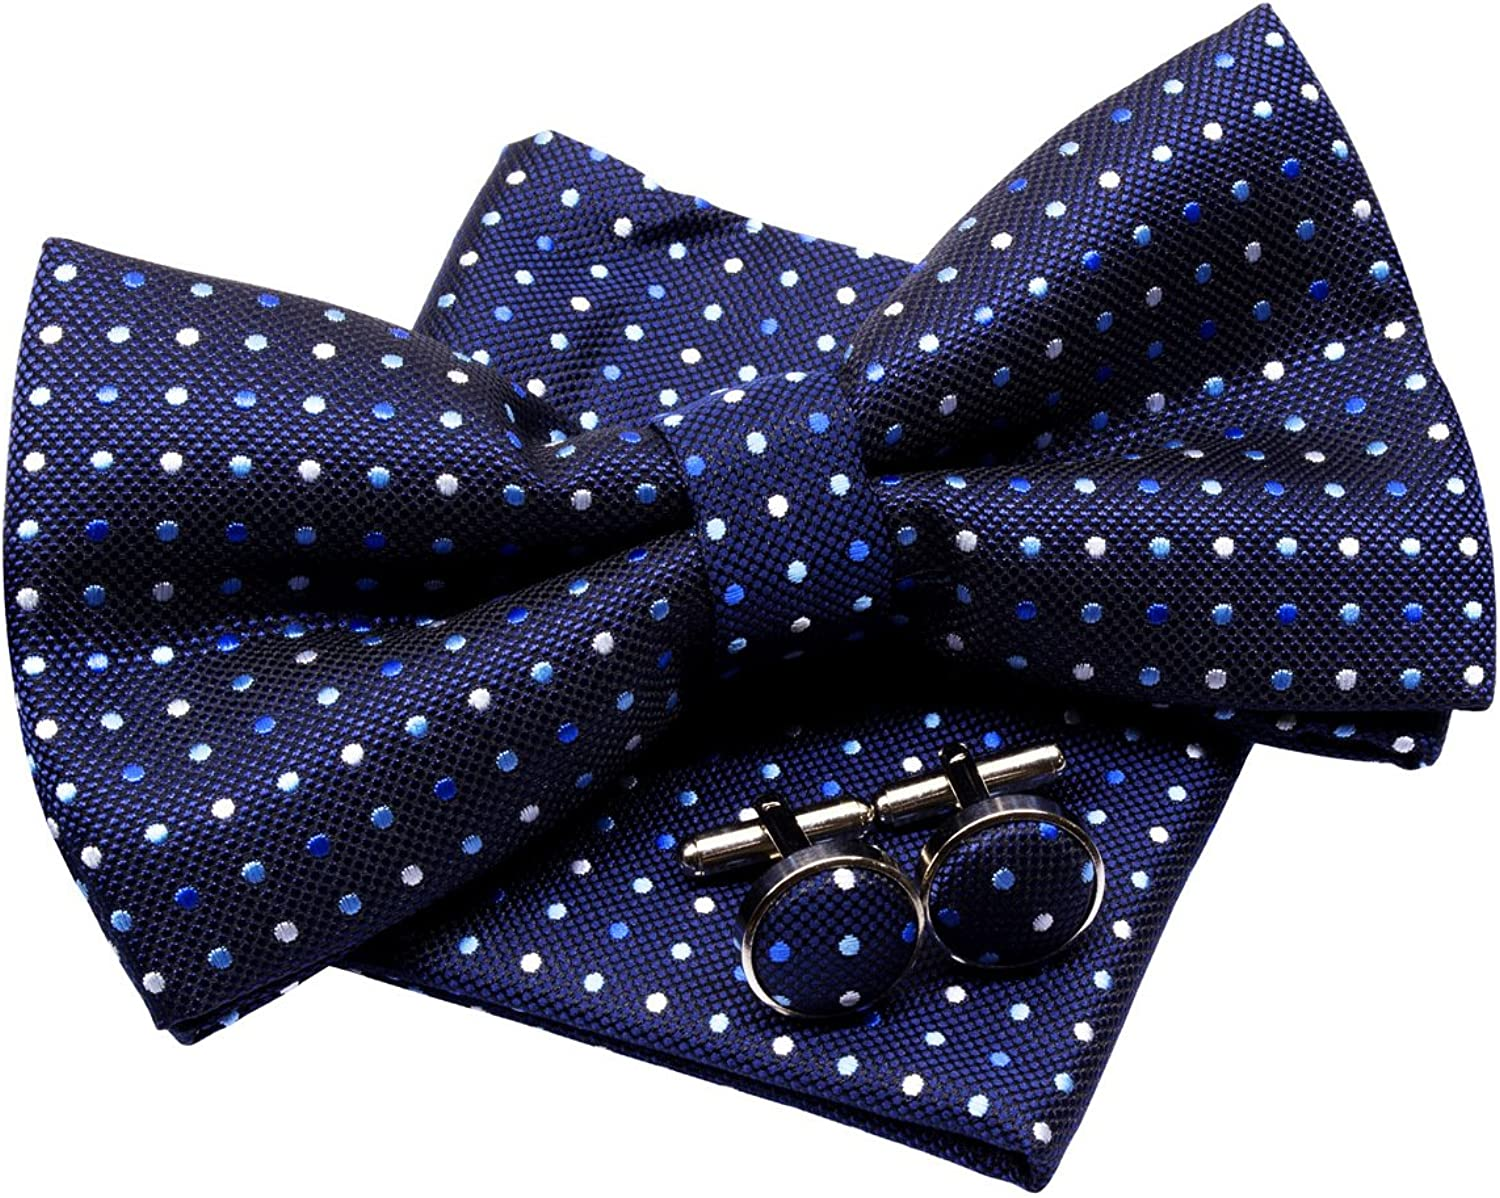 Vintage ThreeColour Polka Dots Woven Pretied Bow Tie (5 ) w Pocket Square & Cufflinks Gift Set